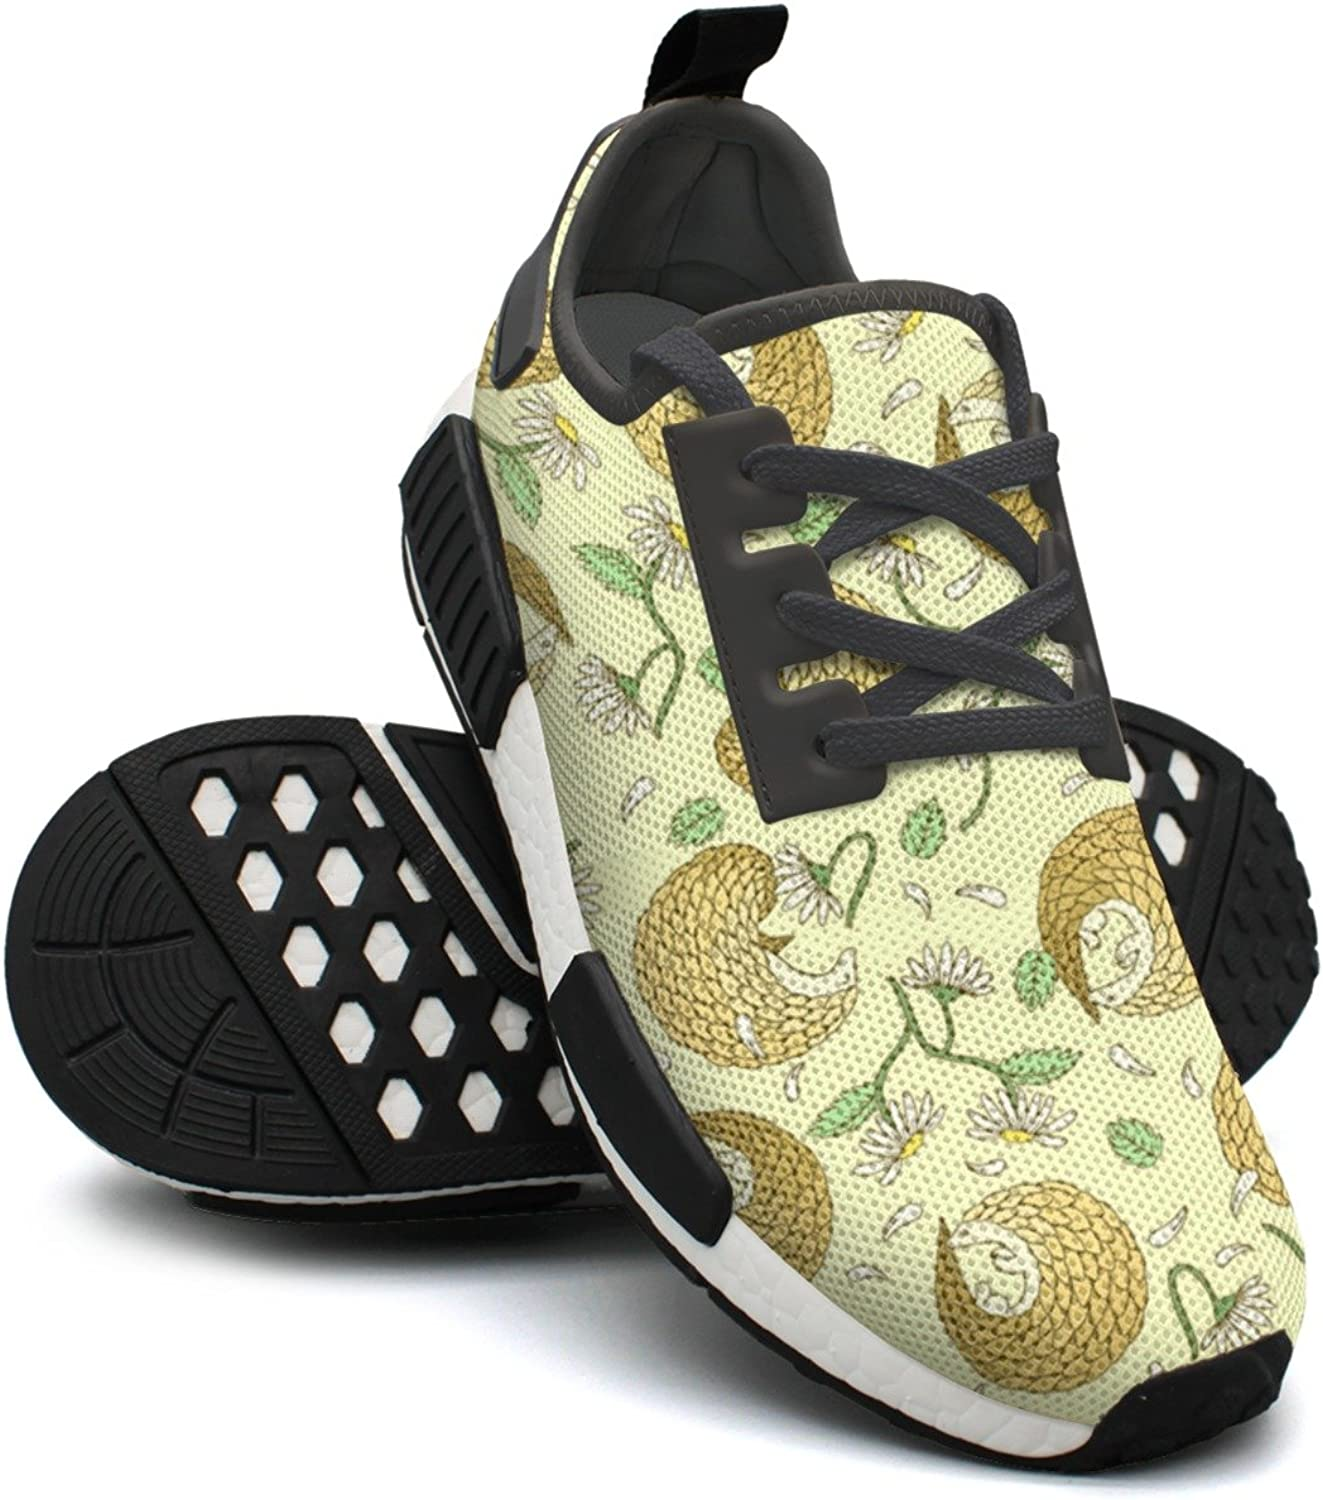 Pangolins and Daisies Women's Hip Hop Lightweight Volleyball Sneakers Gym Outdoor Basketball shoes